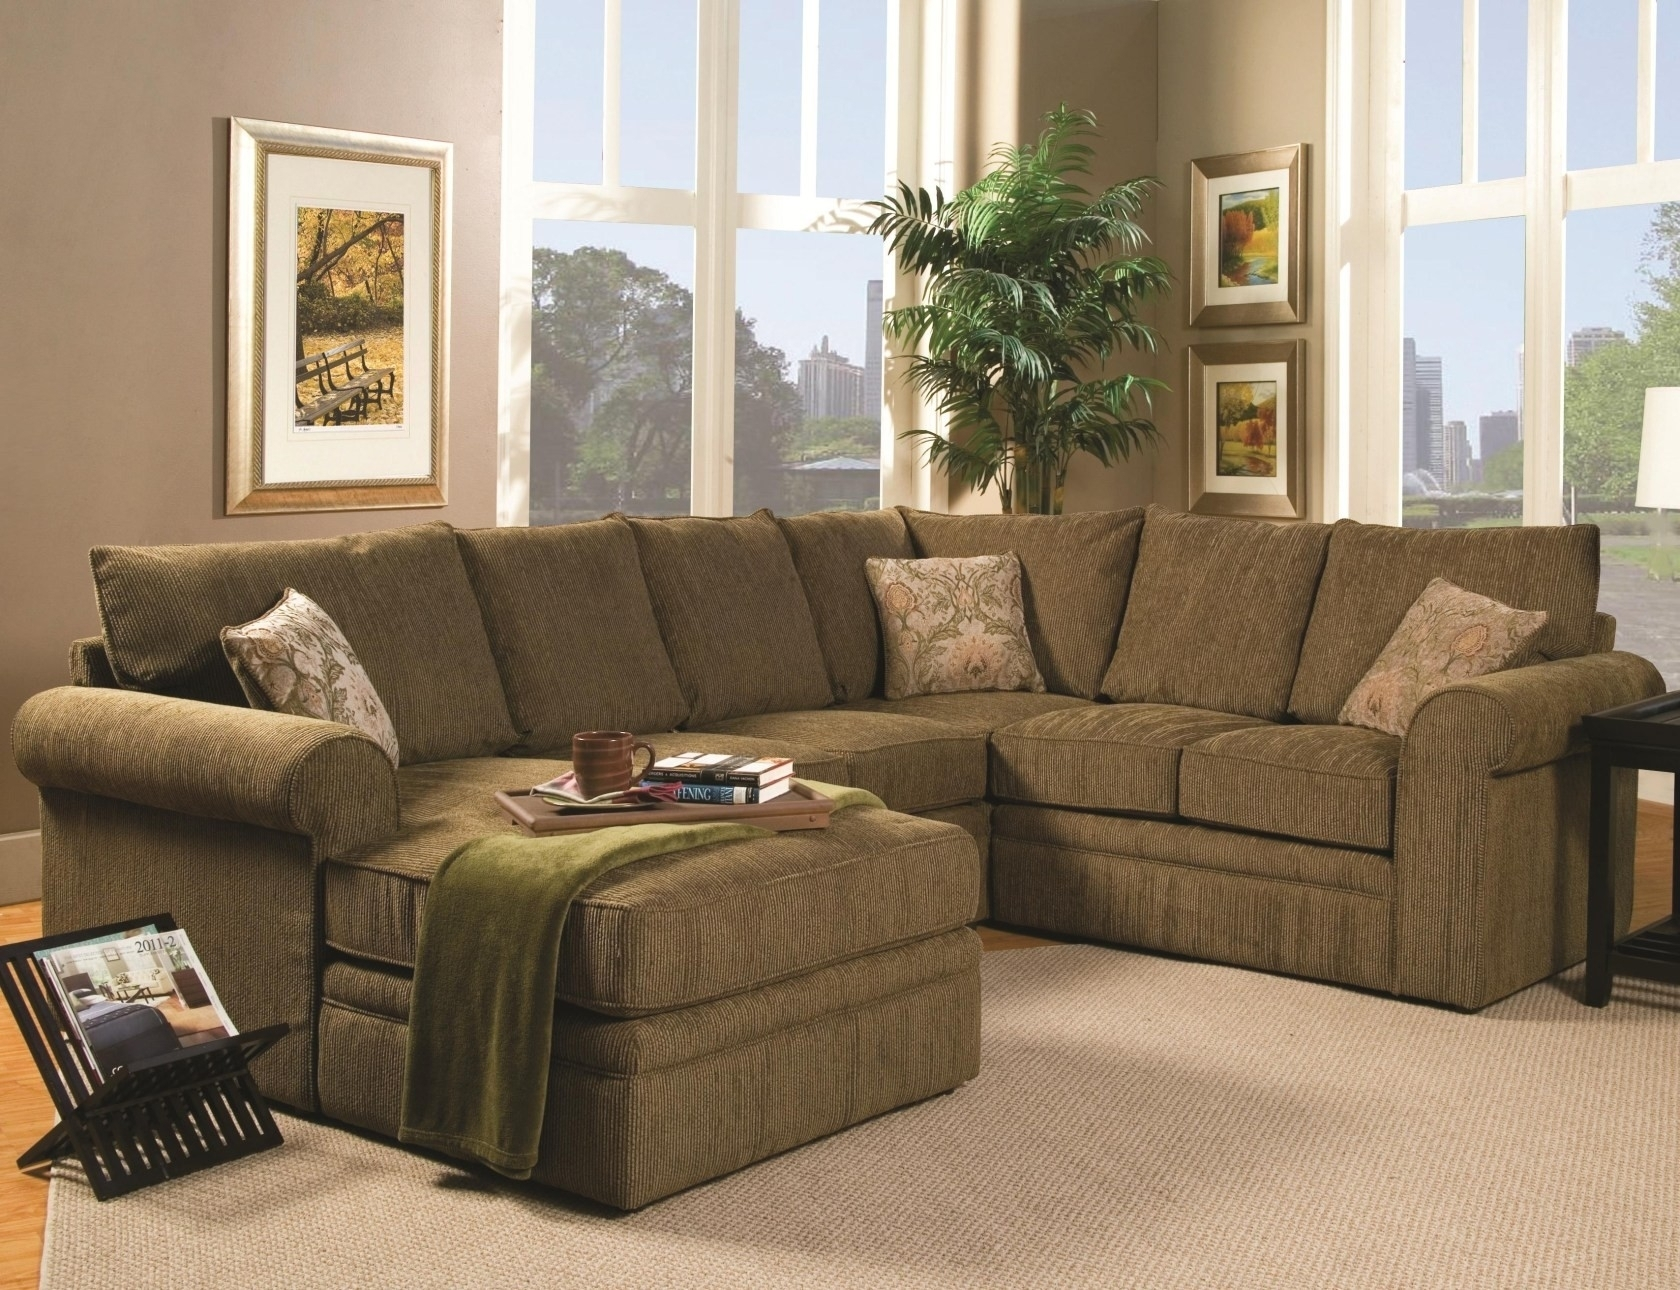 Cool Small U Shaped Sectional Sofa 28 For Bauhaus Sectional Sofa Within Small U Shaped Sectional Sofas (View 7 of 10)